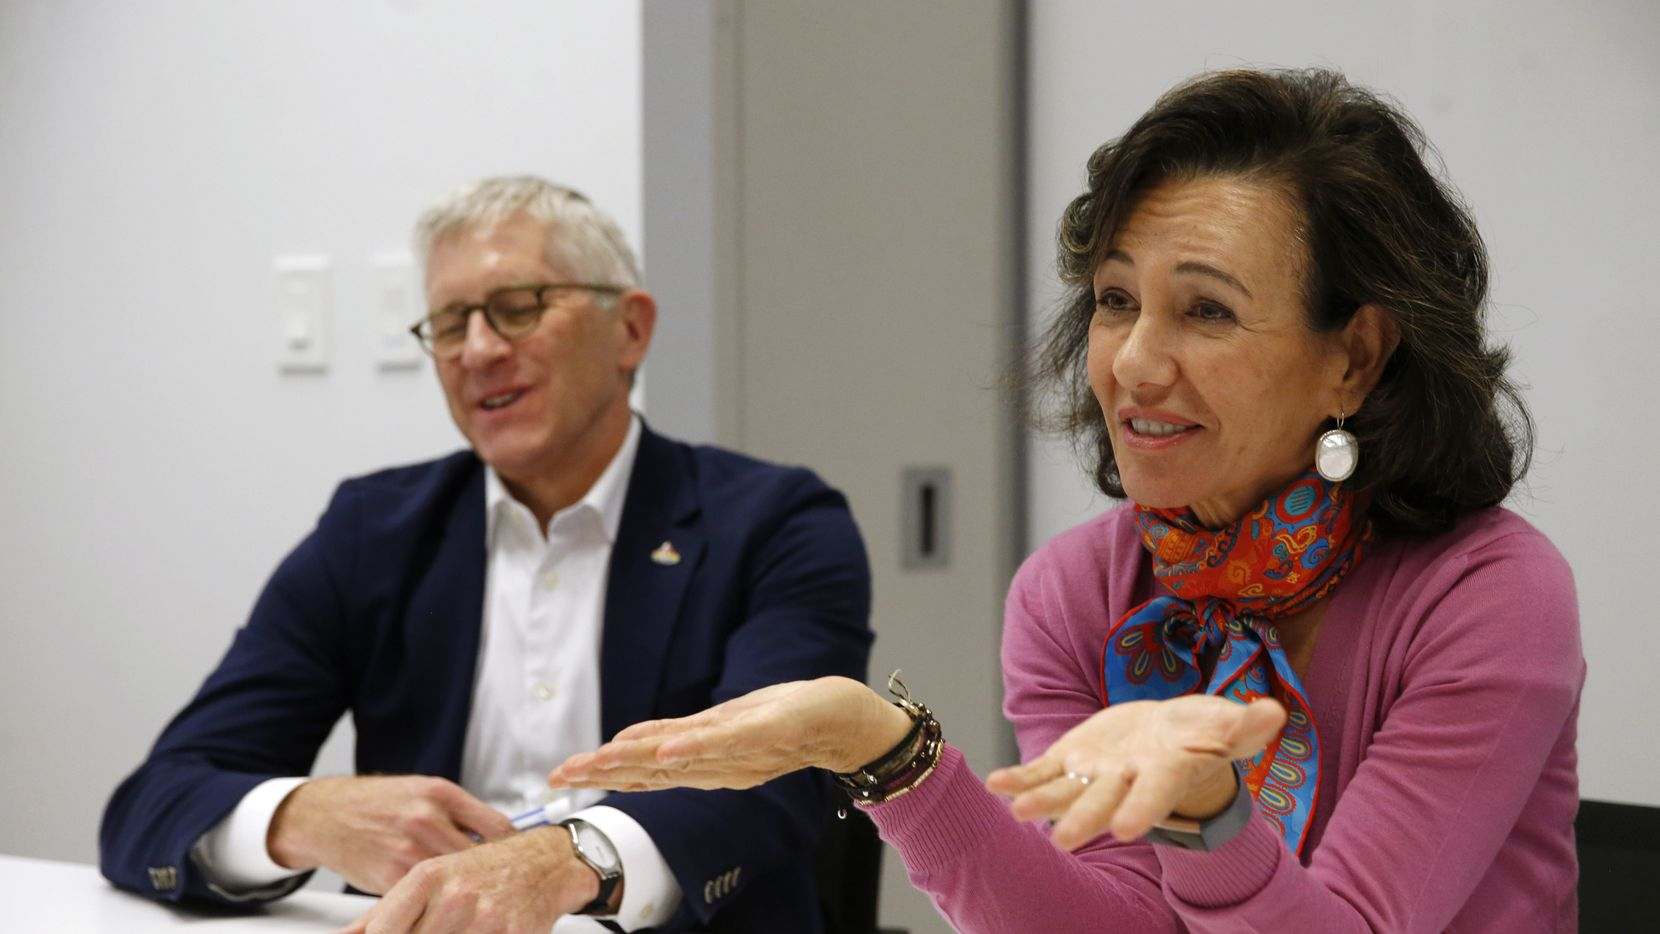 Ana Botin (right), executive chairman of Banco Santander, and Scott Powell, CEO of Santander Consumer USA, said they've improved the financial controls and standards at the subprime lender. Despite a high share of troubled loans, they're not worried about a downturn.